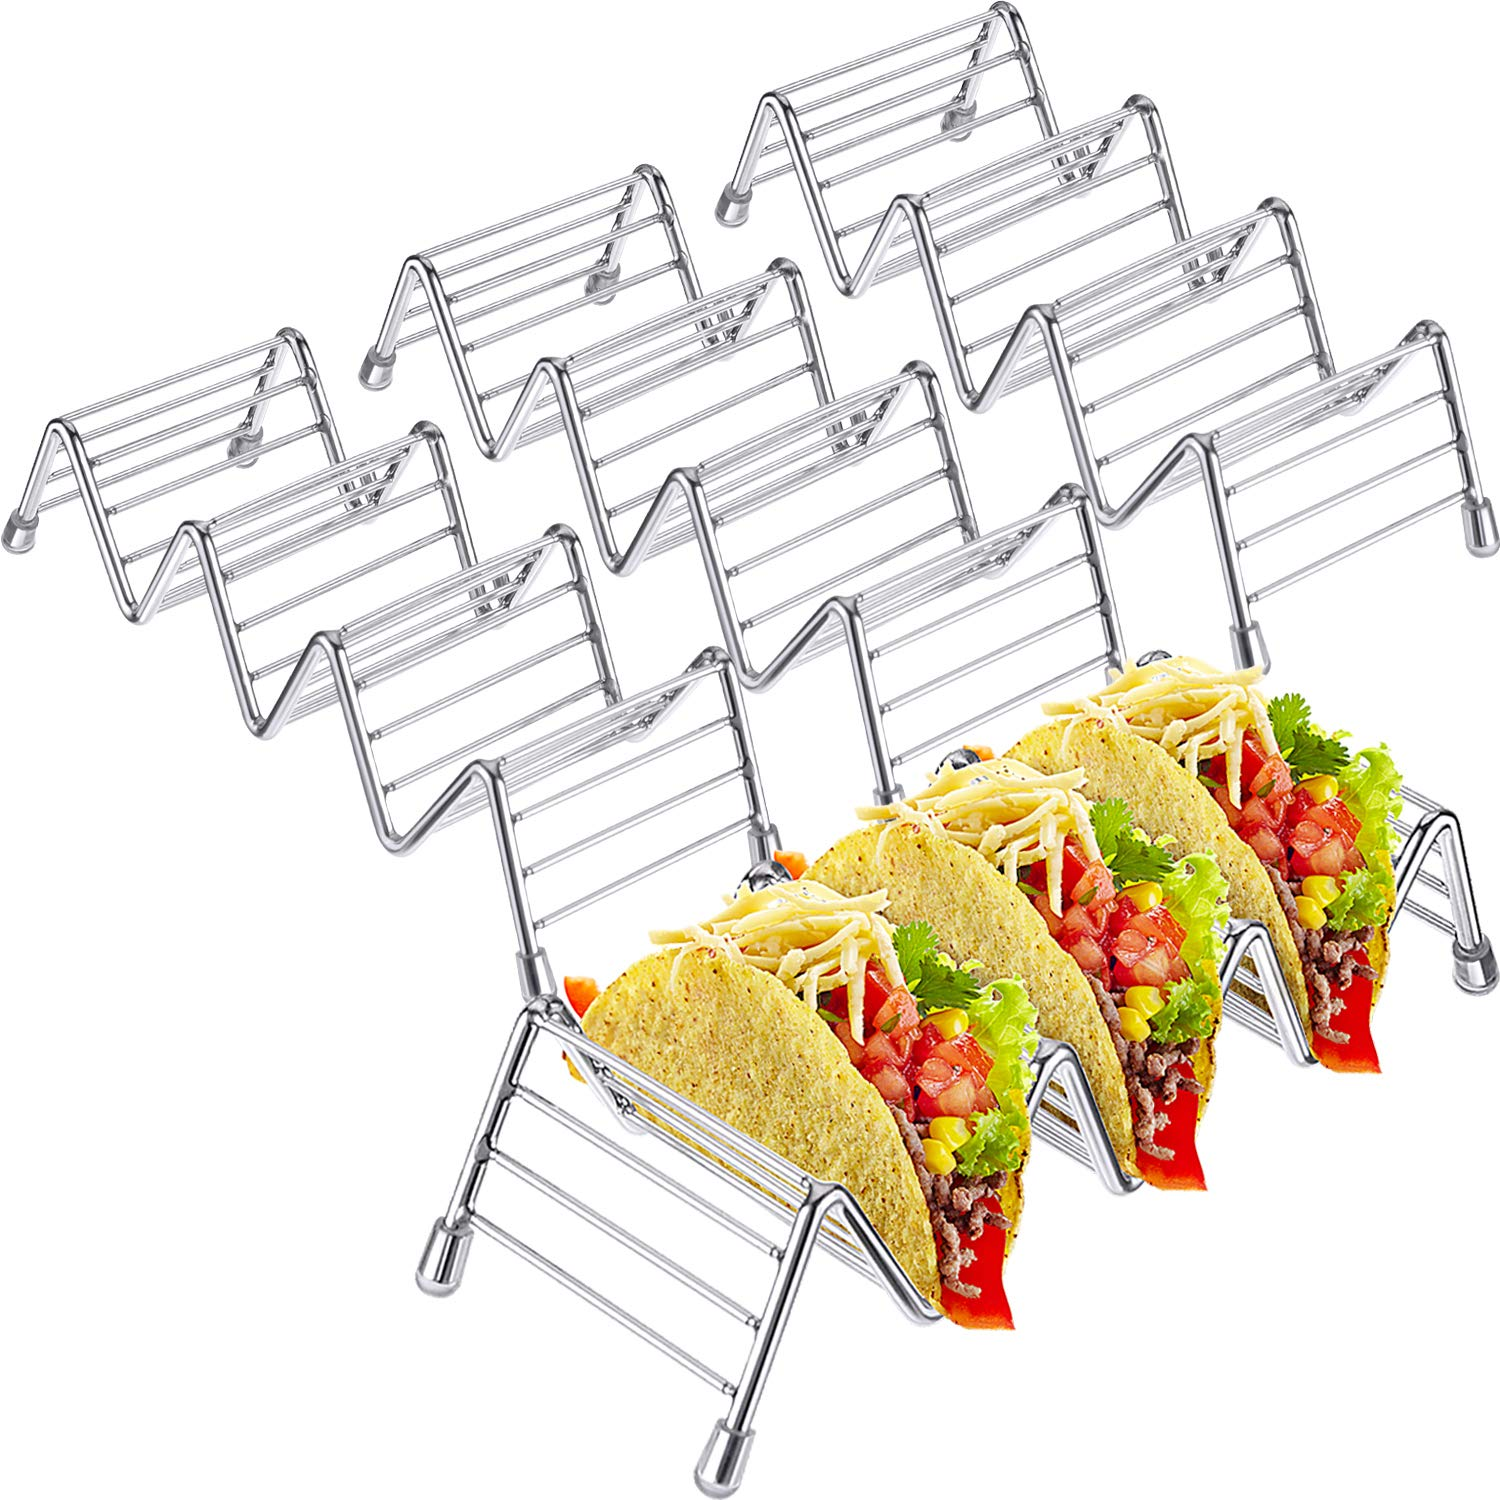 Pangda 4 Pack Stainless Steel Taco Holders Stand Taco Rack W Space for Hard or Soft Shell Tacos (Large)